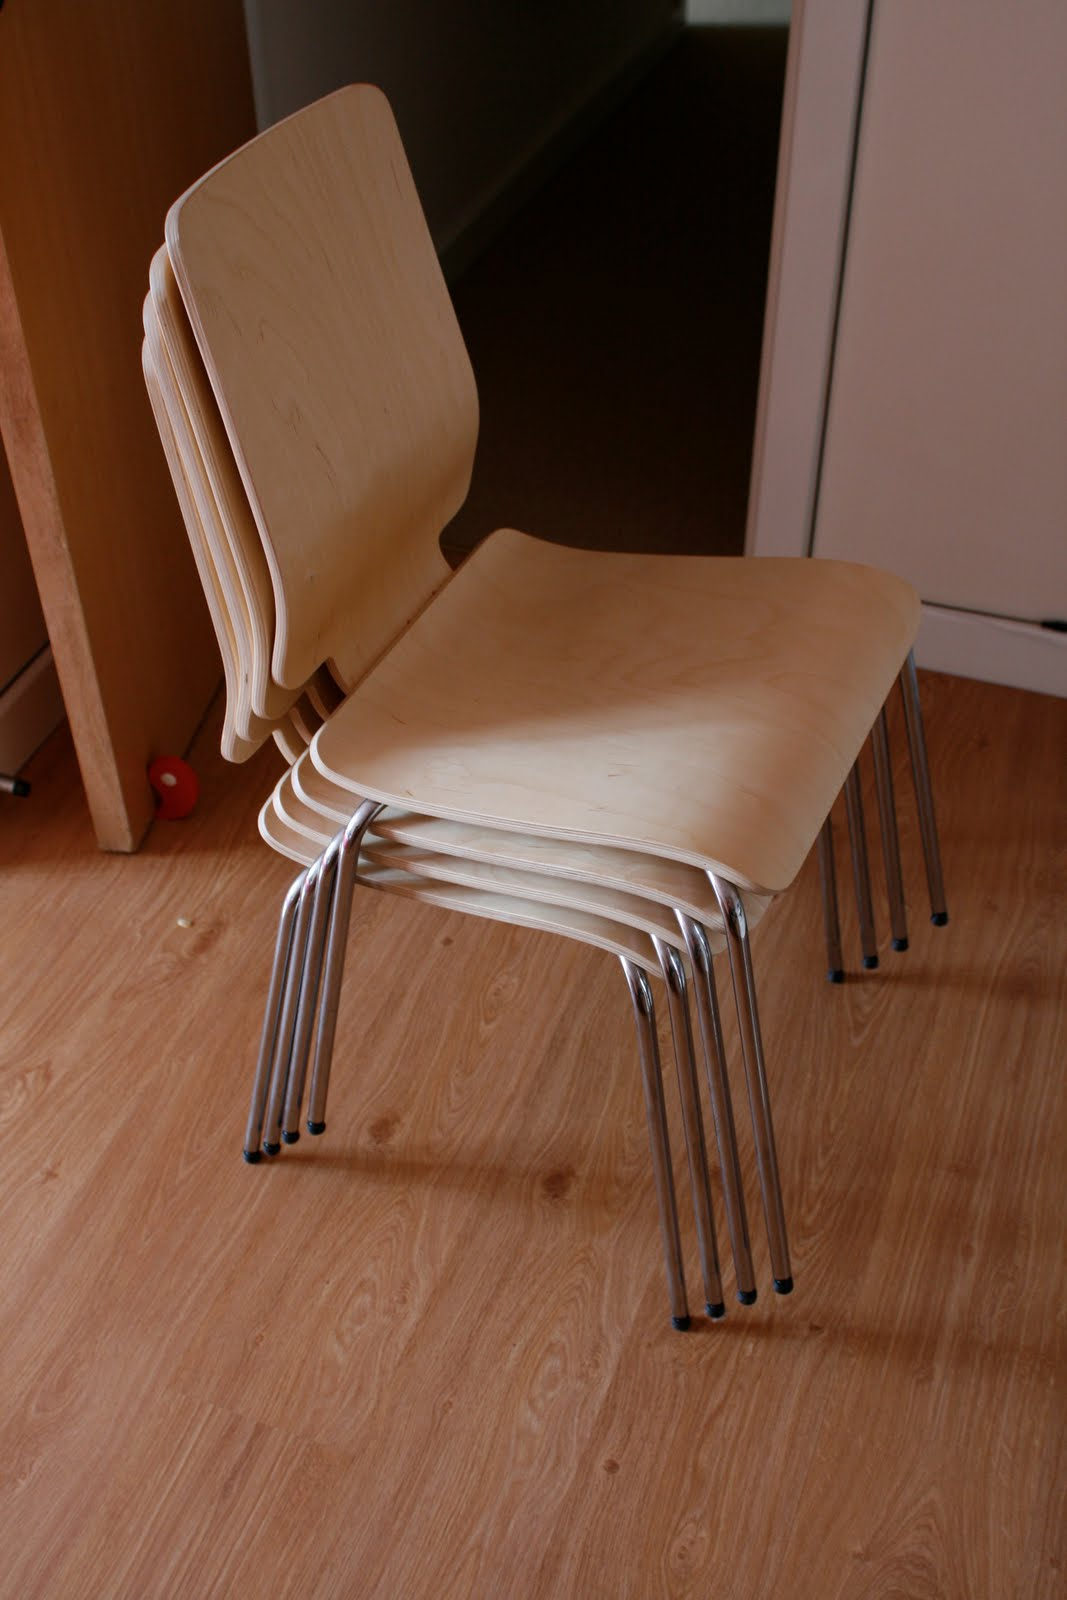 Ikea Chairs For Sale - Everything Must Go!